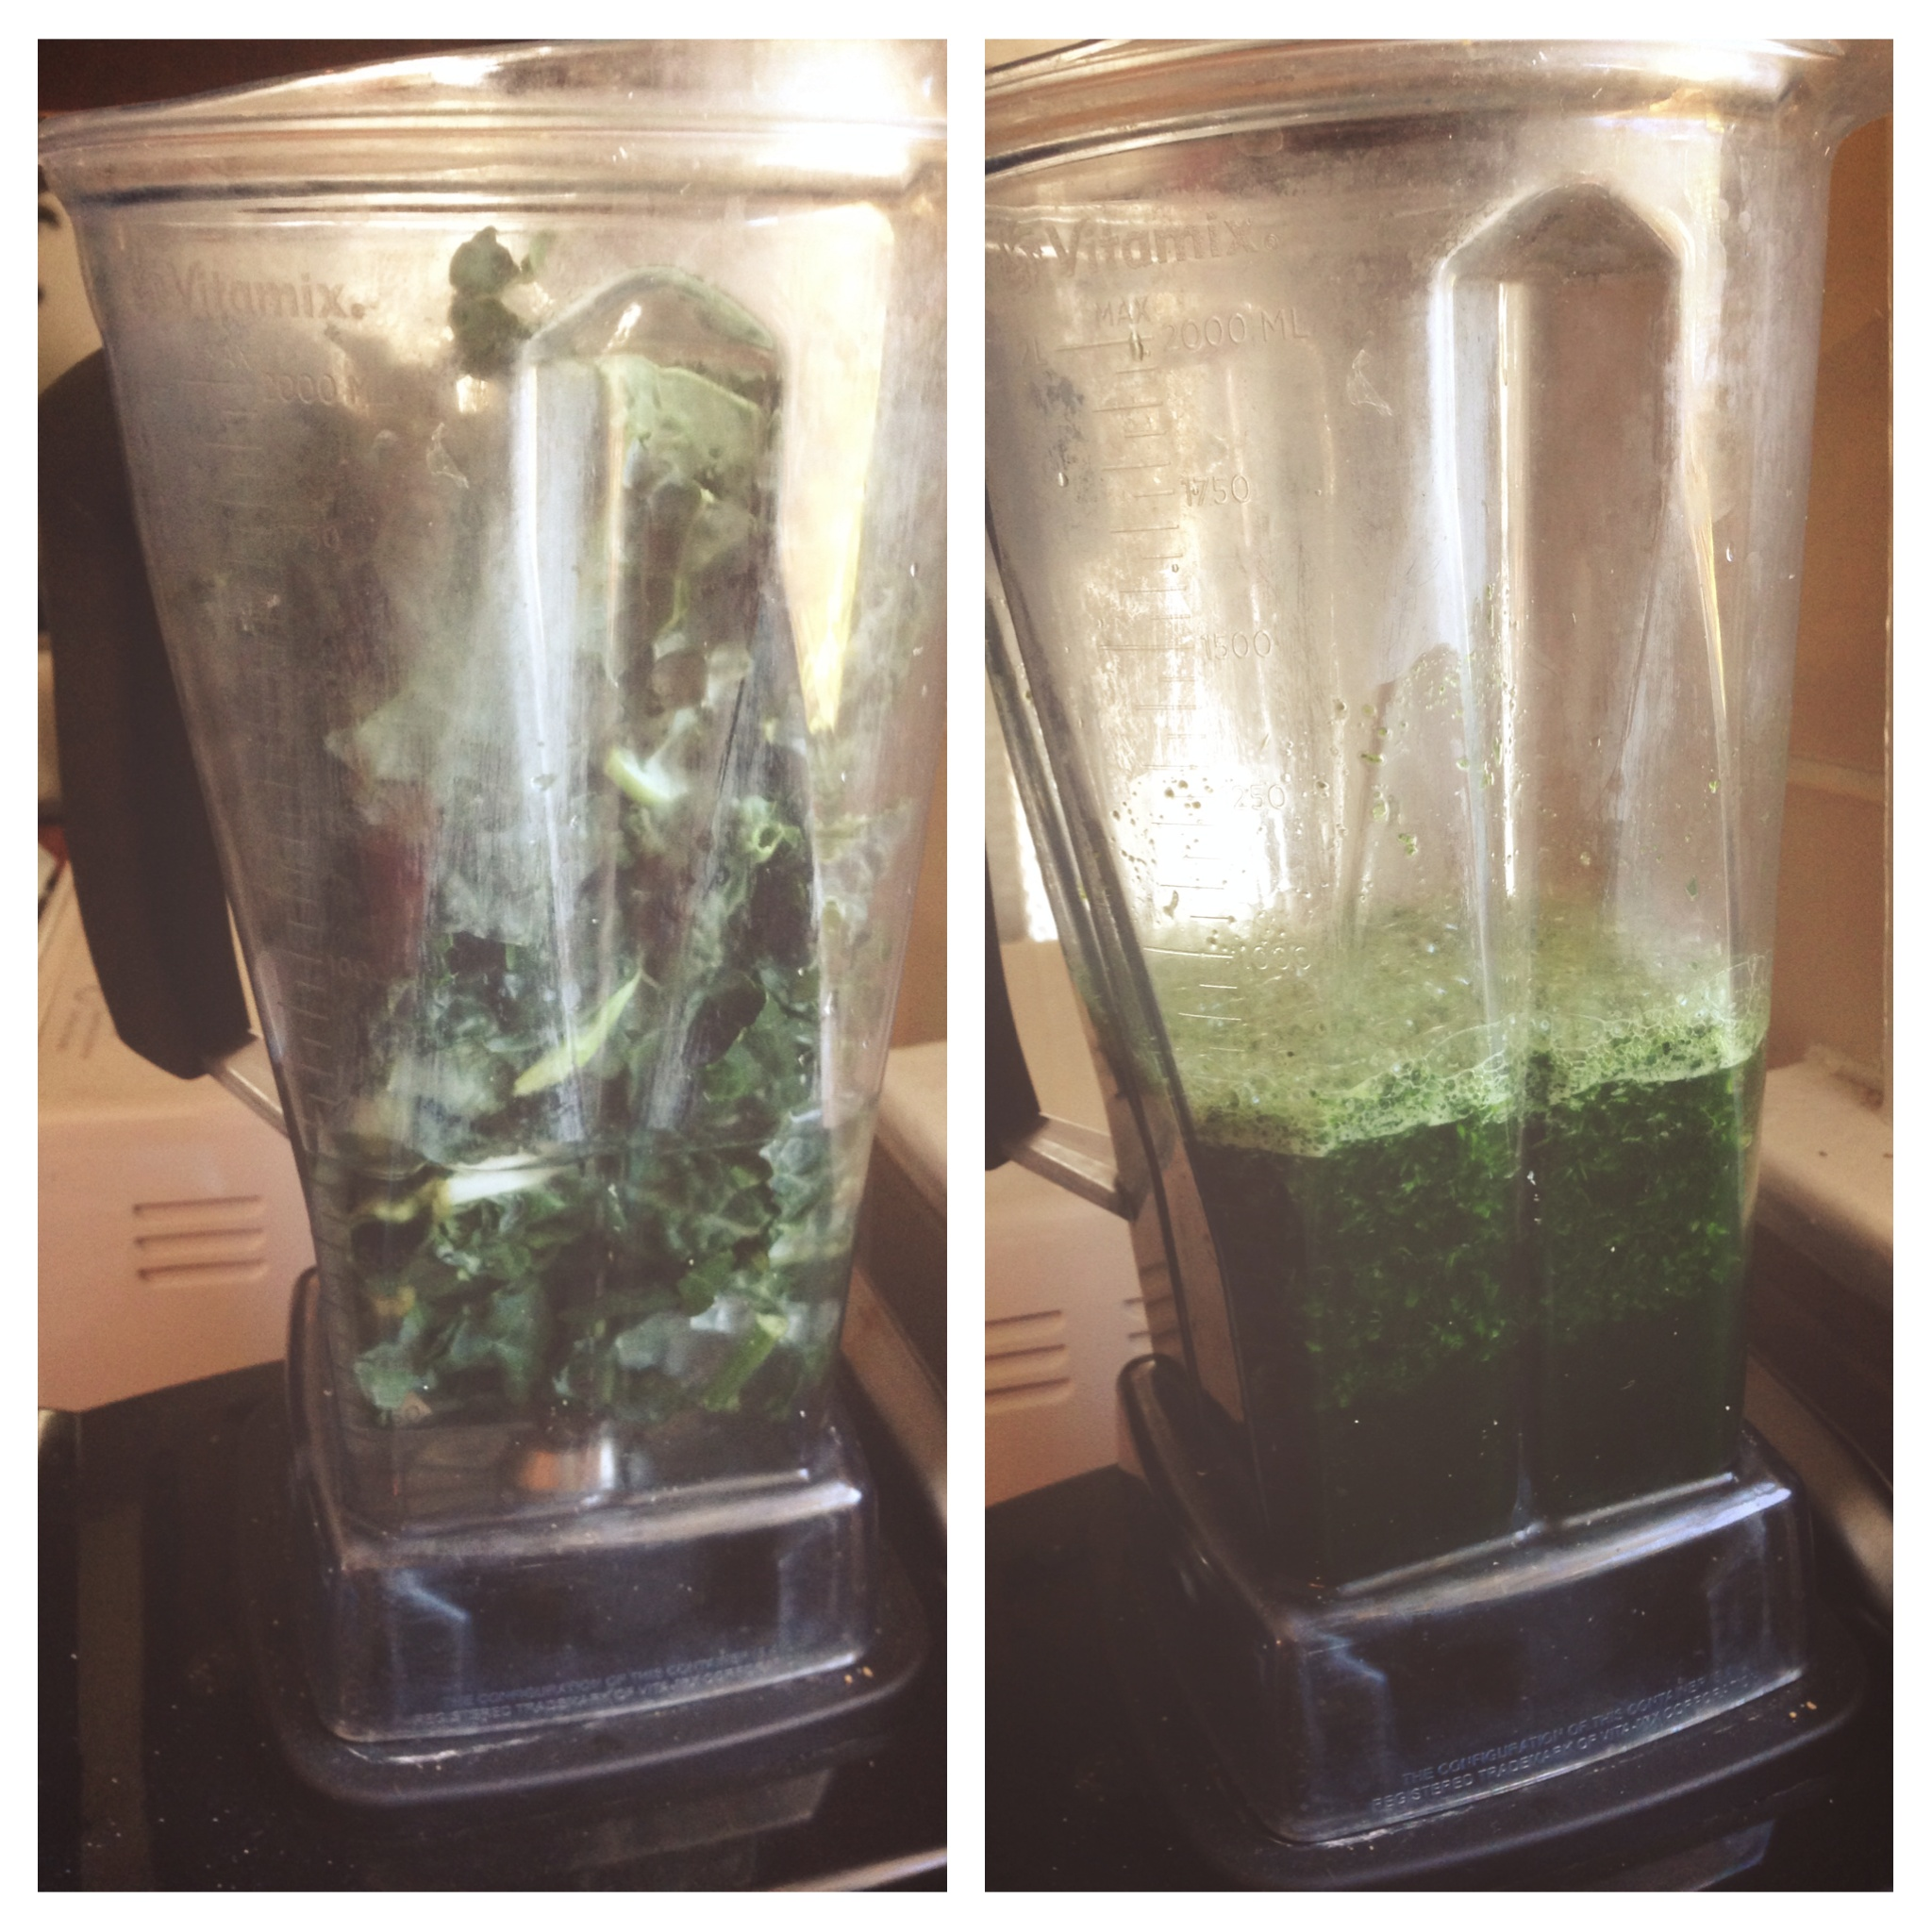 We use the organic tuscan kale from Trader Joes. It's already washed andchopped, saving me a lot of time and making this drink doable on a day to day basis.